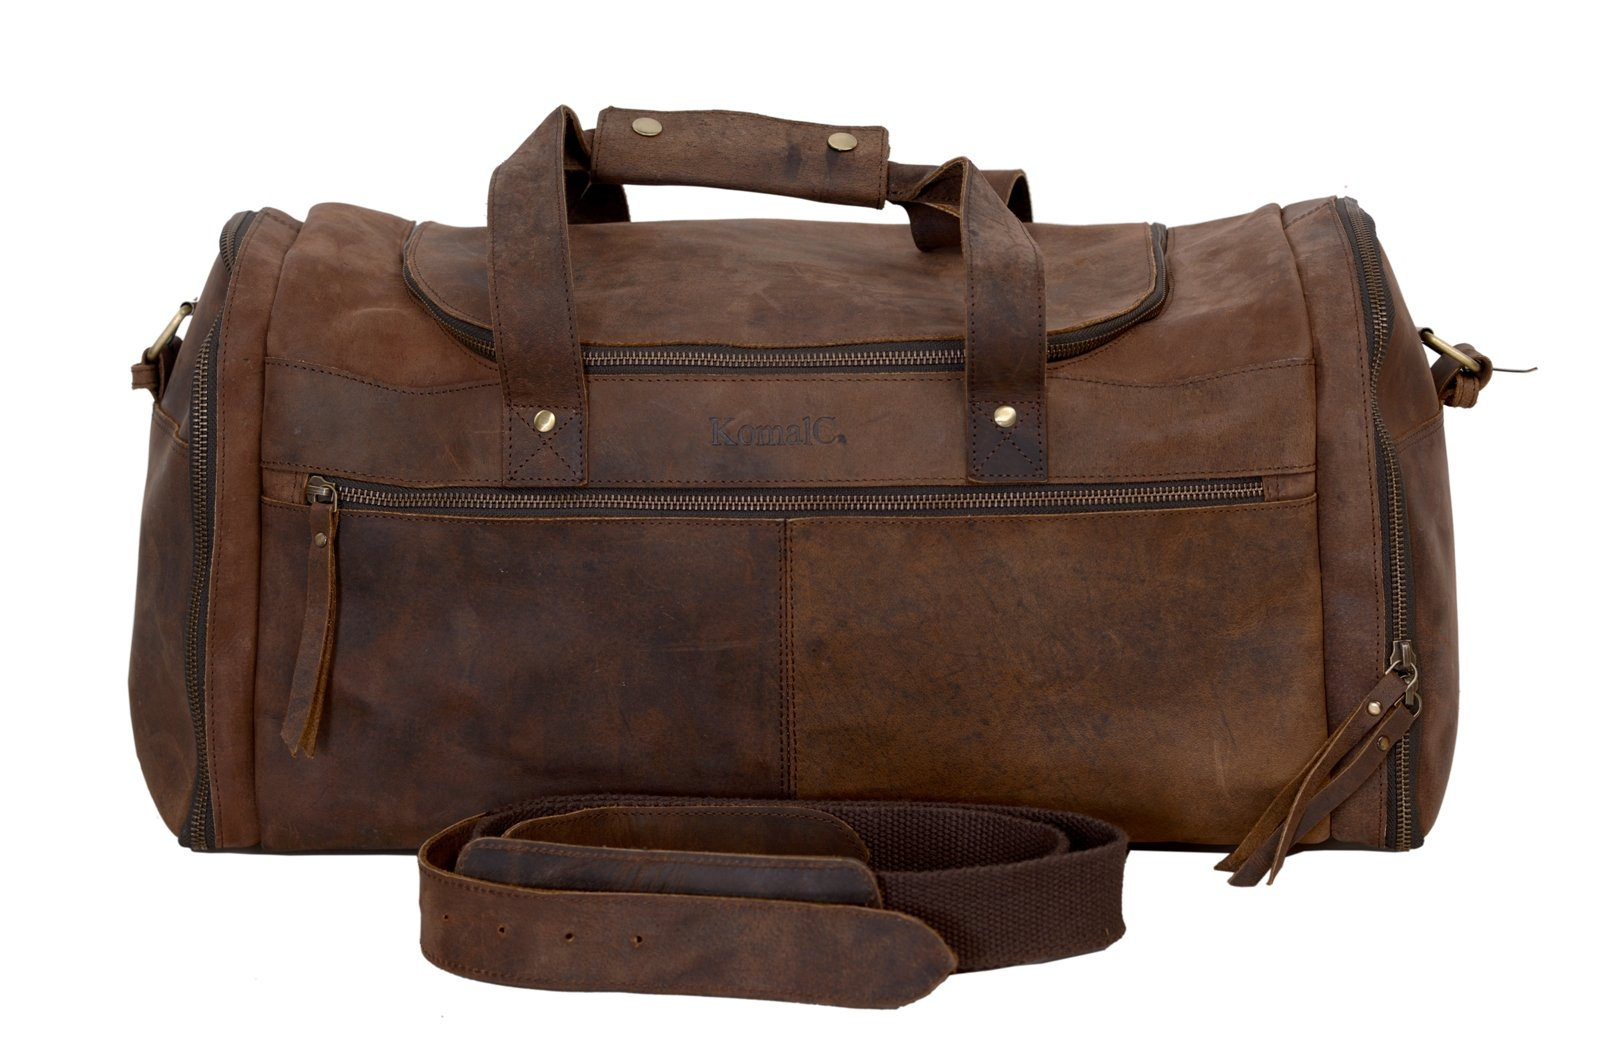 KomalC 21 inch U Zip Duffel holdall Travel Sports Overnight Weekend Leather Bag for Gym Sports Cabin by KomalC (Image #1)